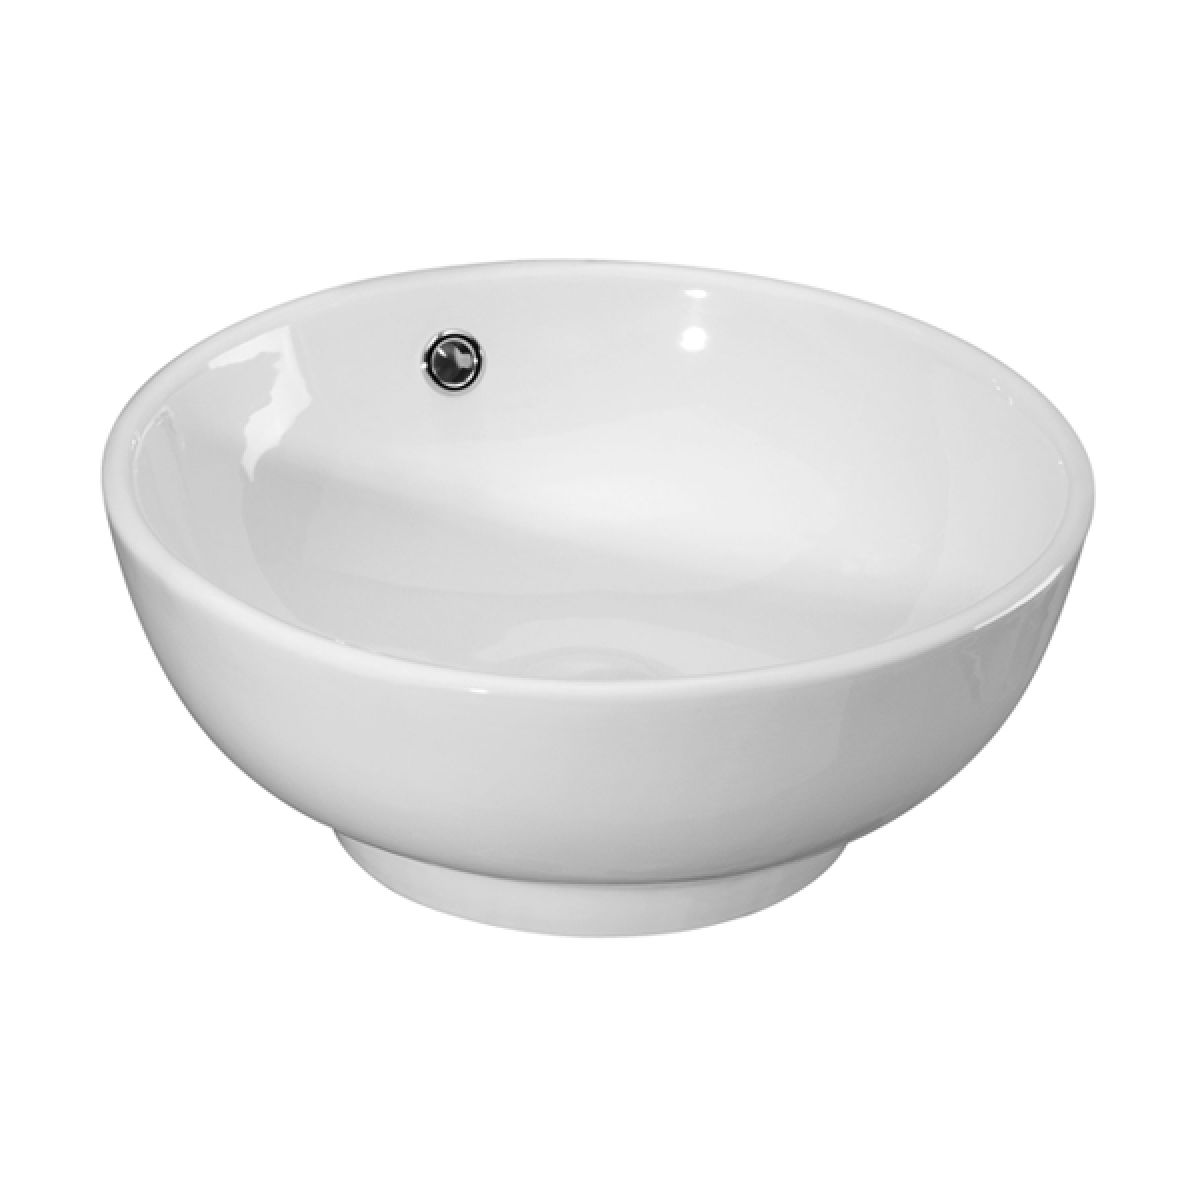 Premier Vessels Round Counter-top Basin 420mm